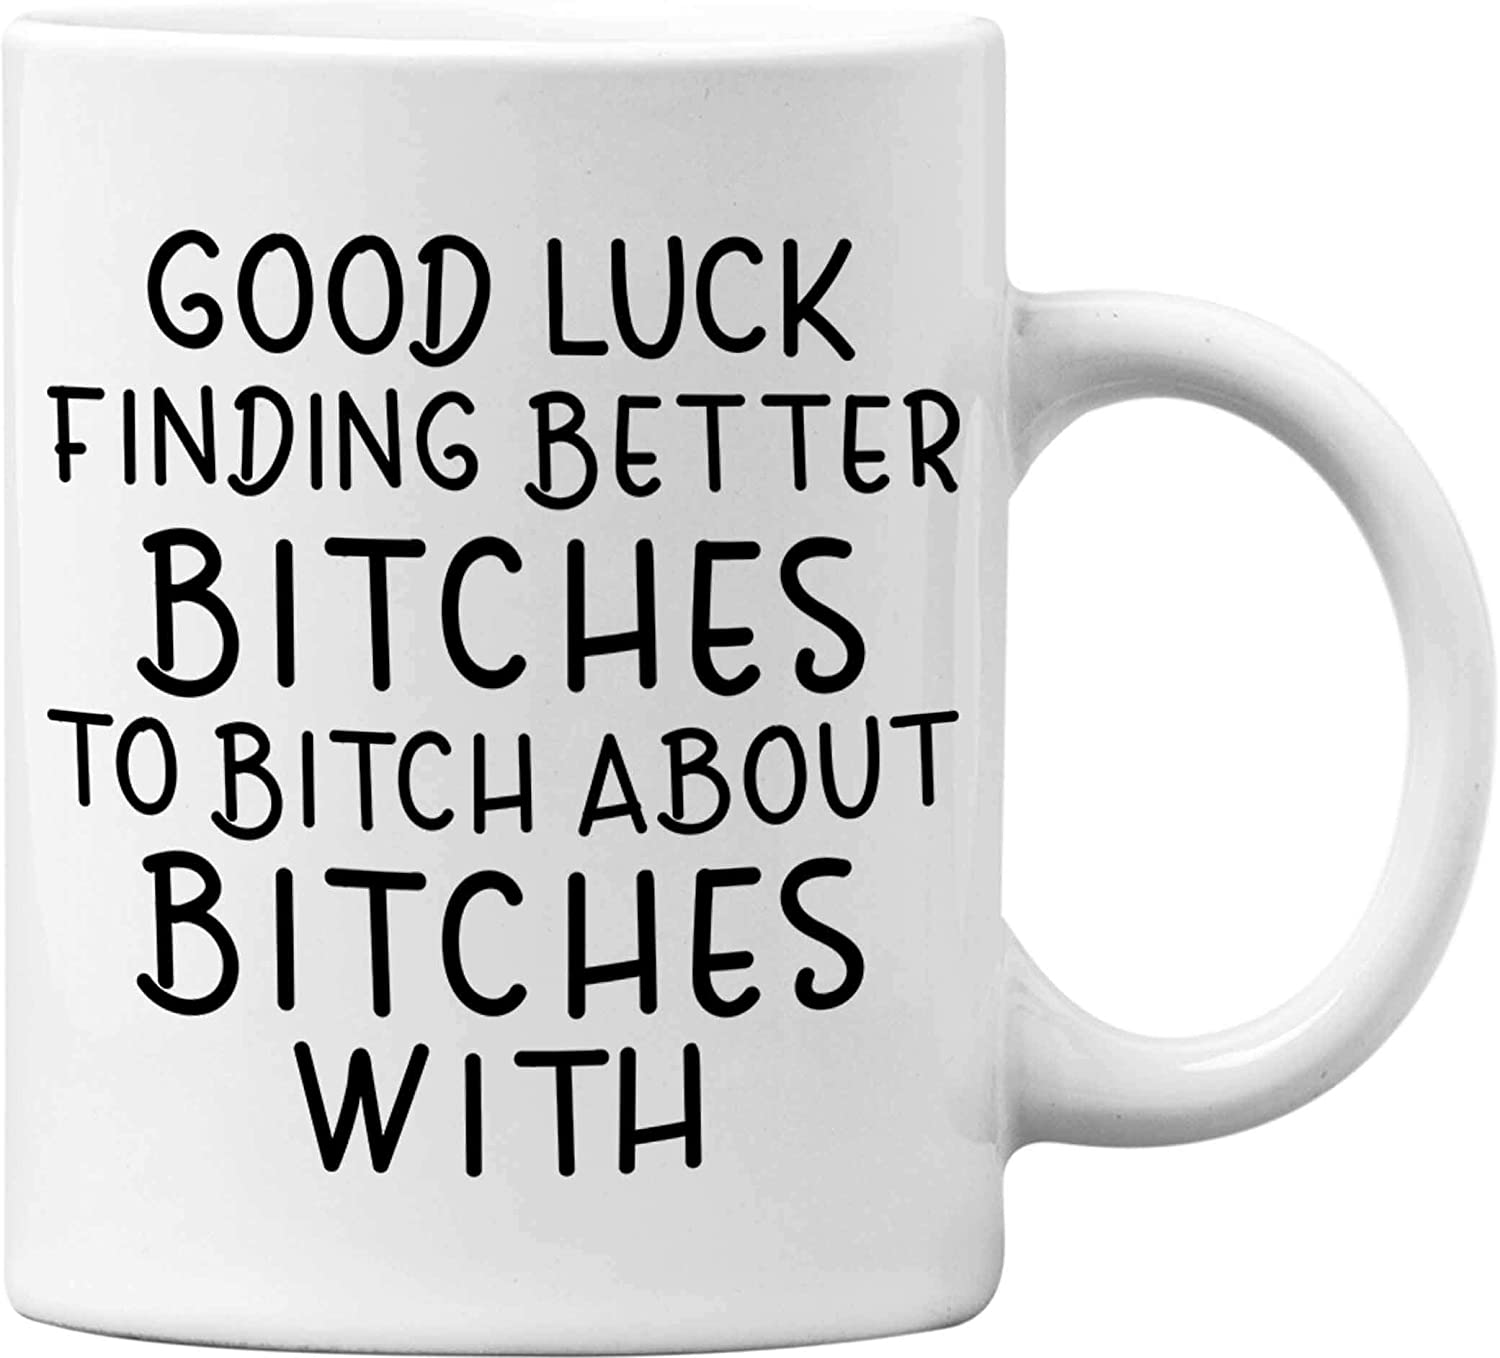 Good Luck Finding Better Bitches To Bitch About Bitches With Funny White 11 Oz. Office Coffee Mug - Great Novelty Gift for Office Workers, Bosses, Co-Worker, Friends and Family